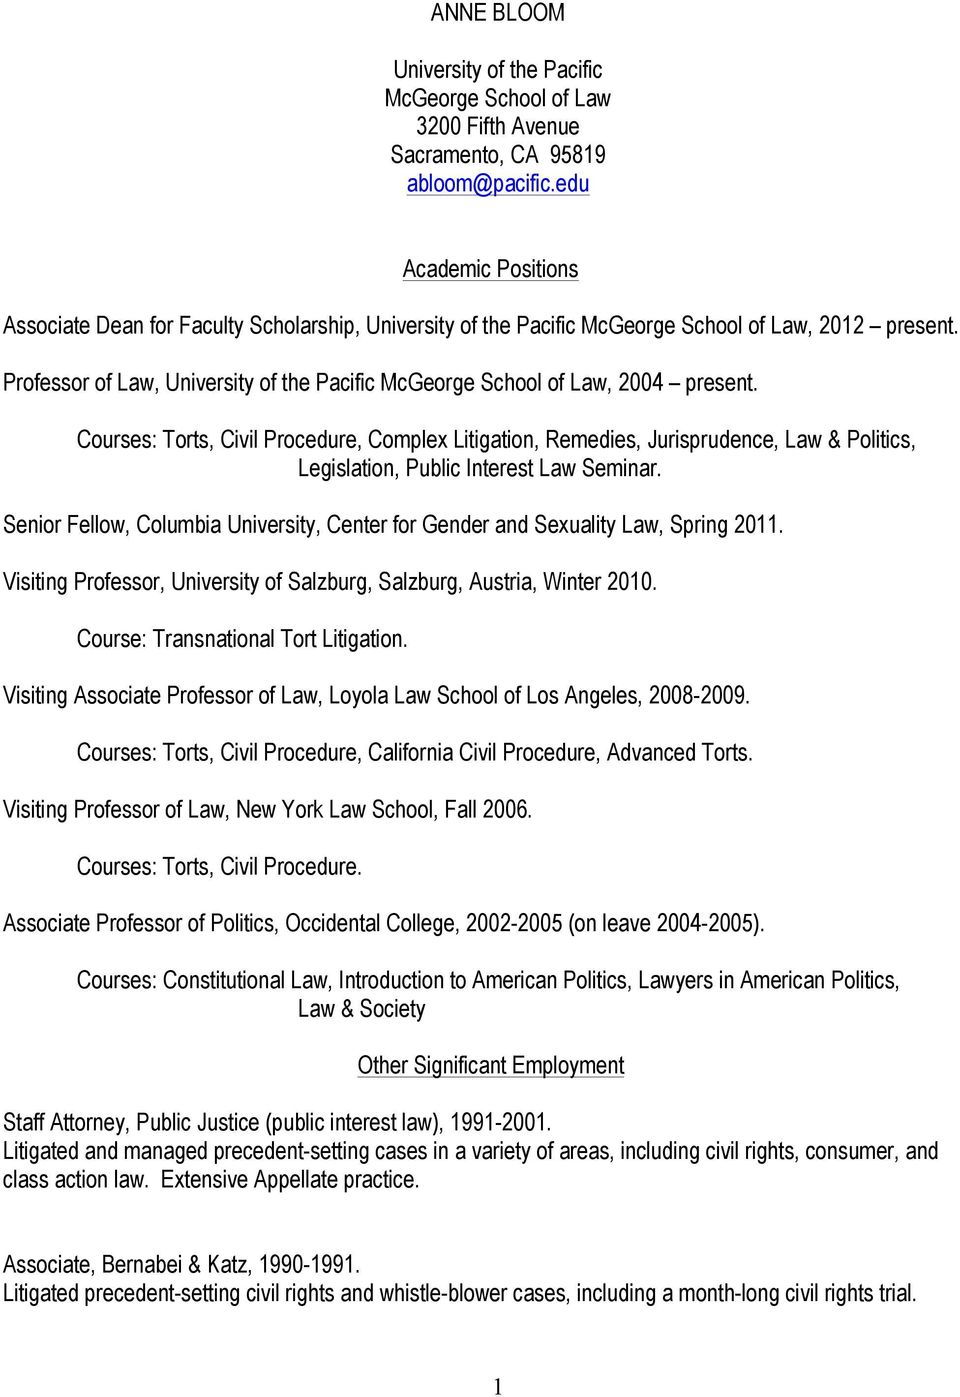 Professor of Law, University of the Pacific McGeorge School of Law, 2004 present.